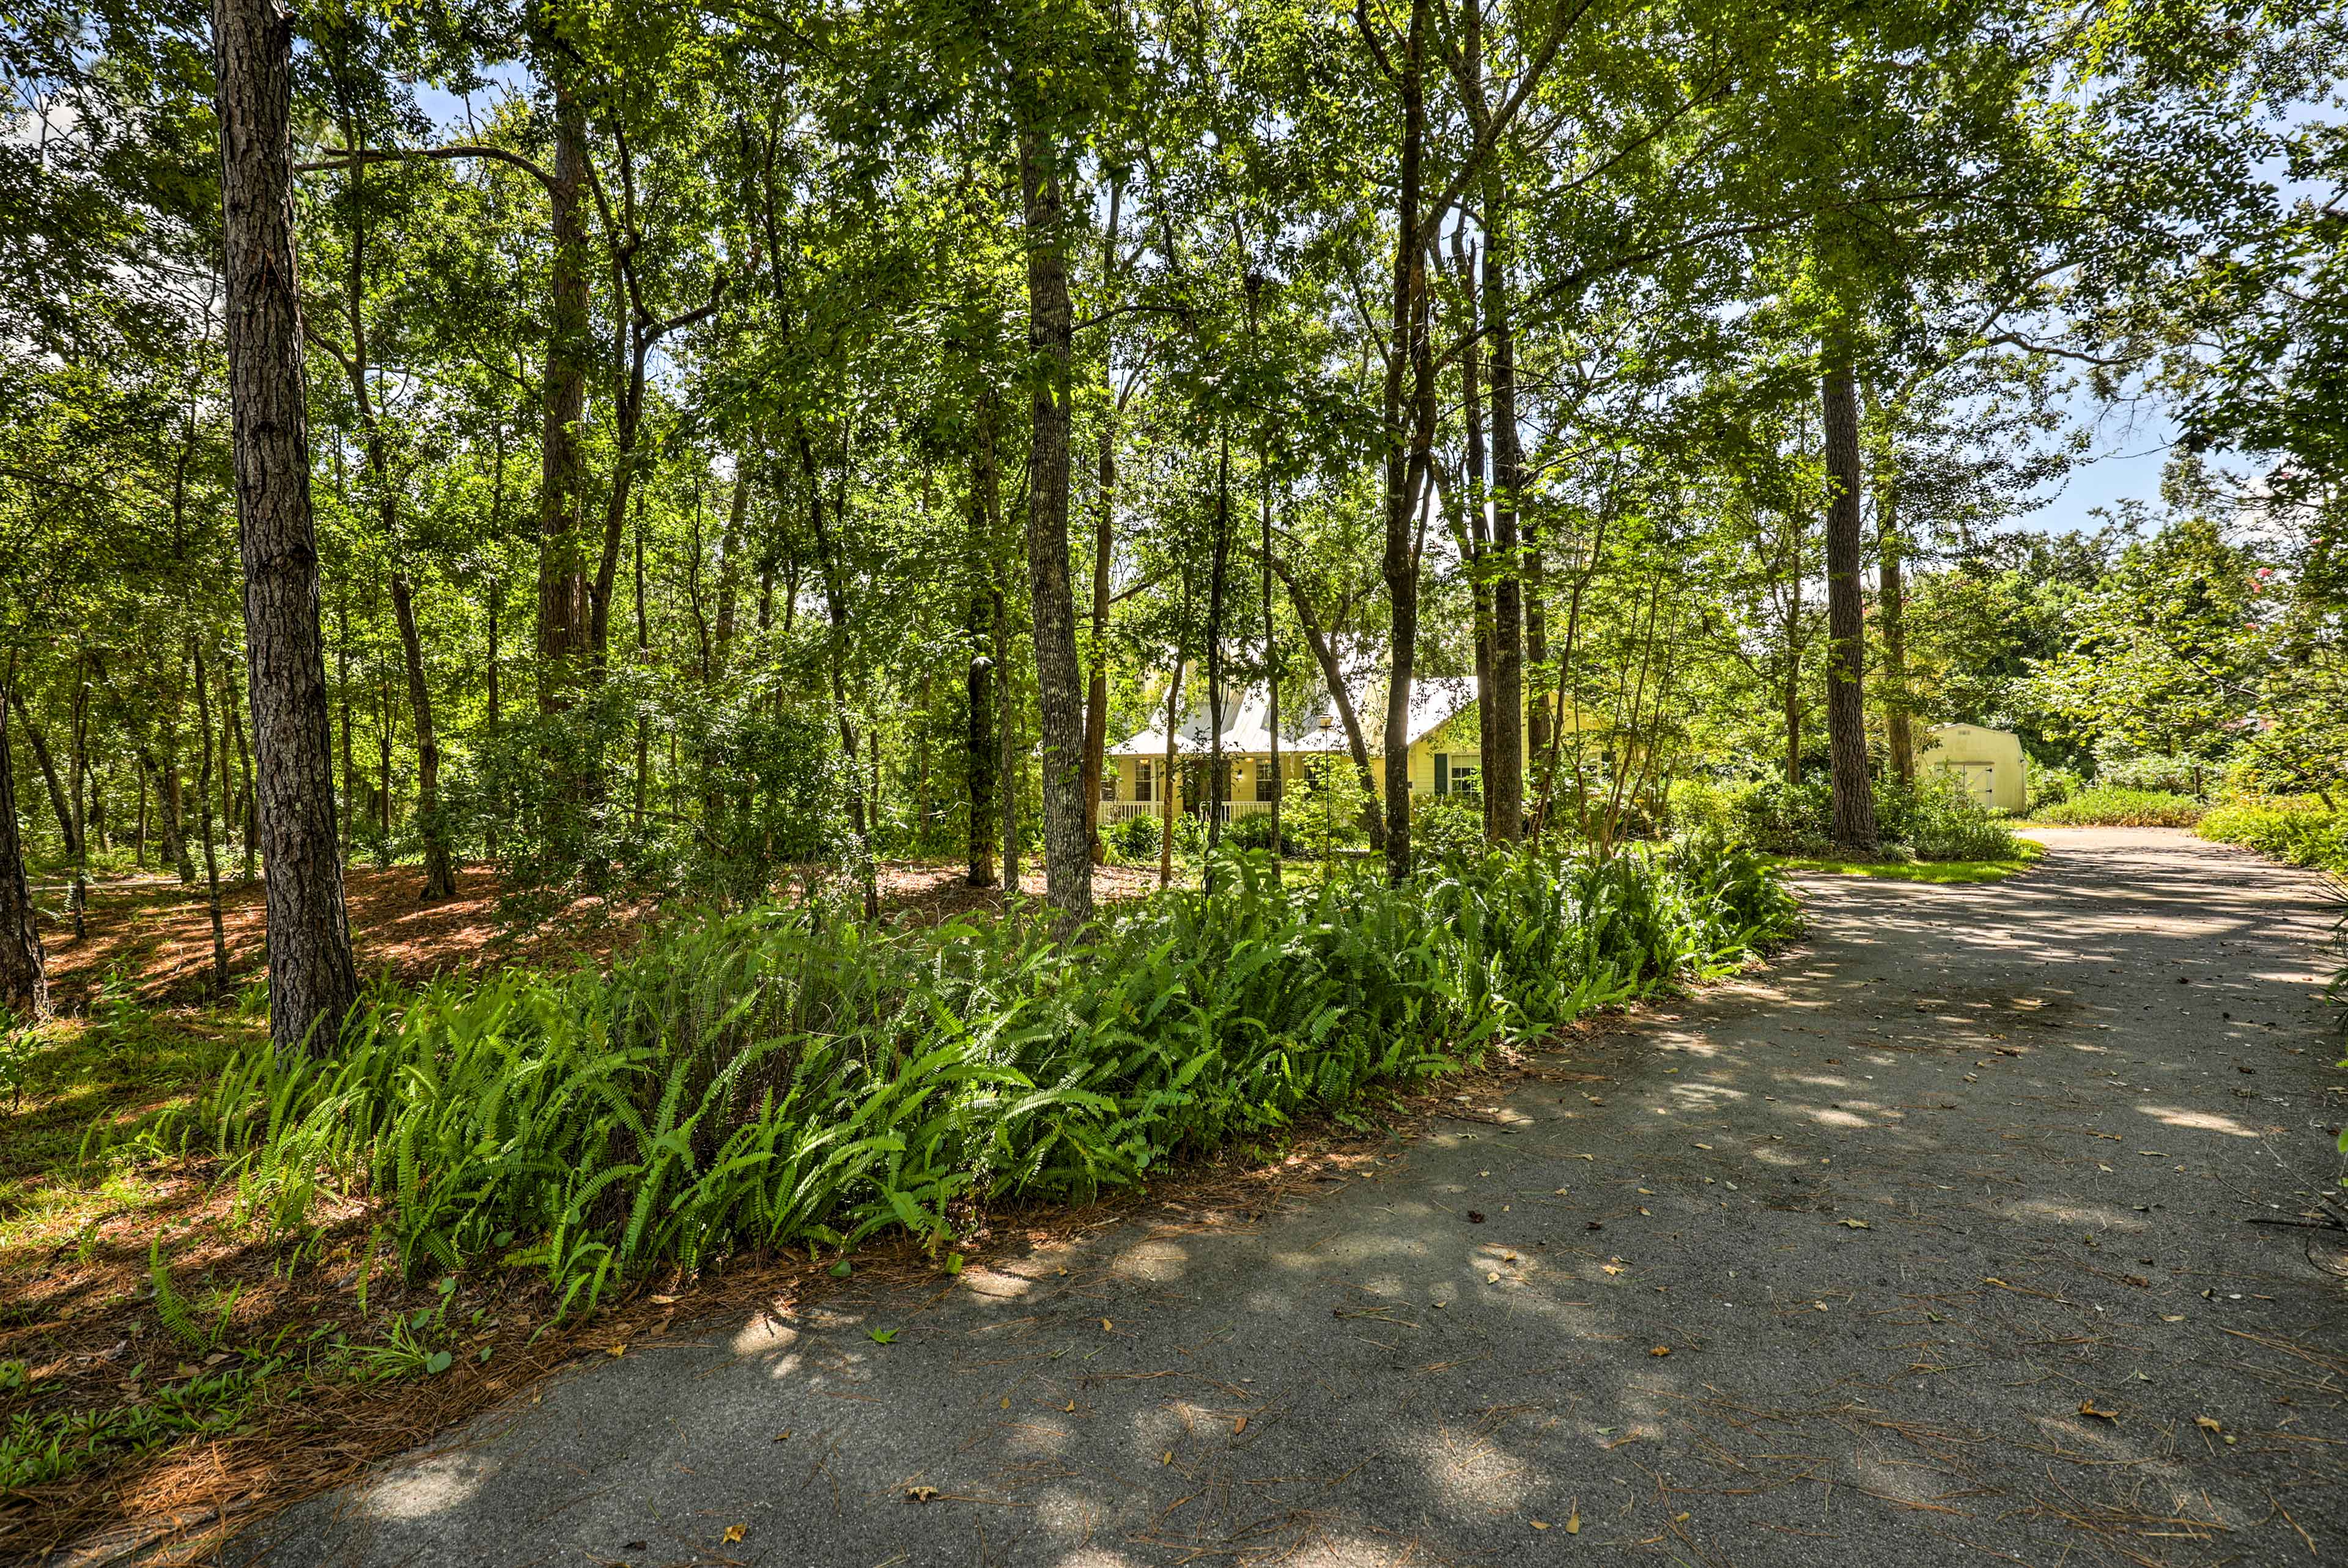 Drive up the tree-framed road to your home-away-from-home.